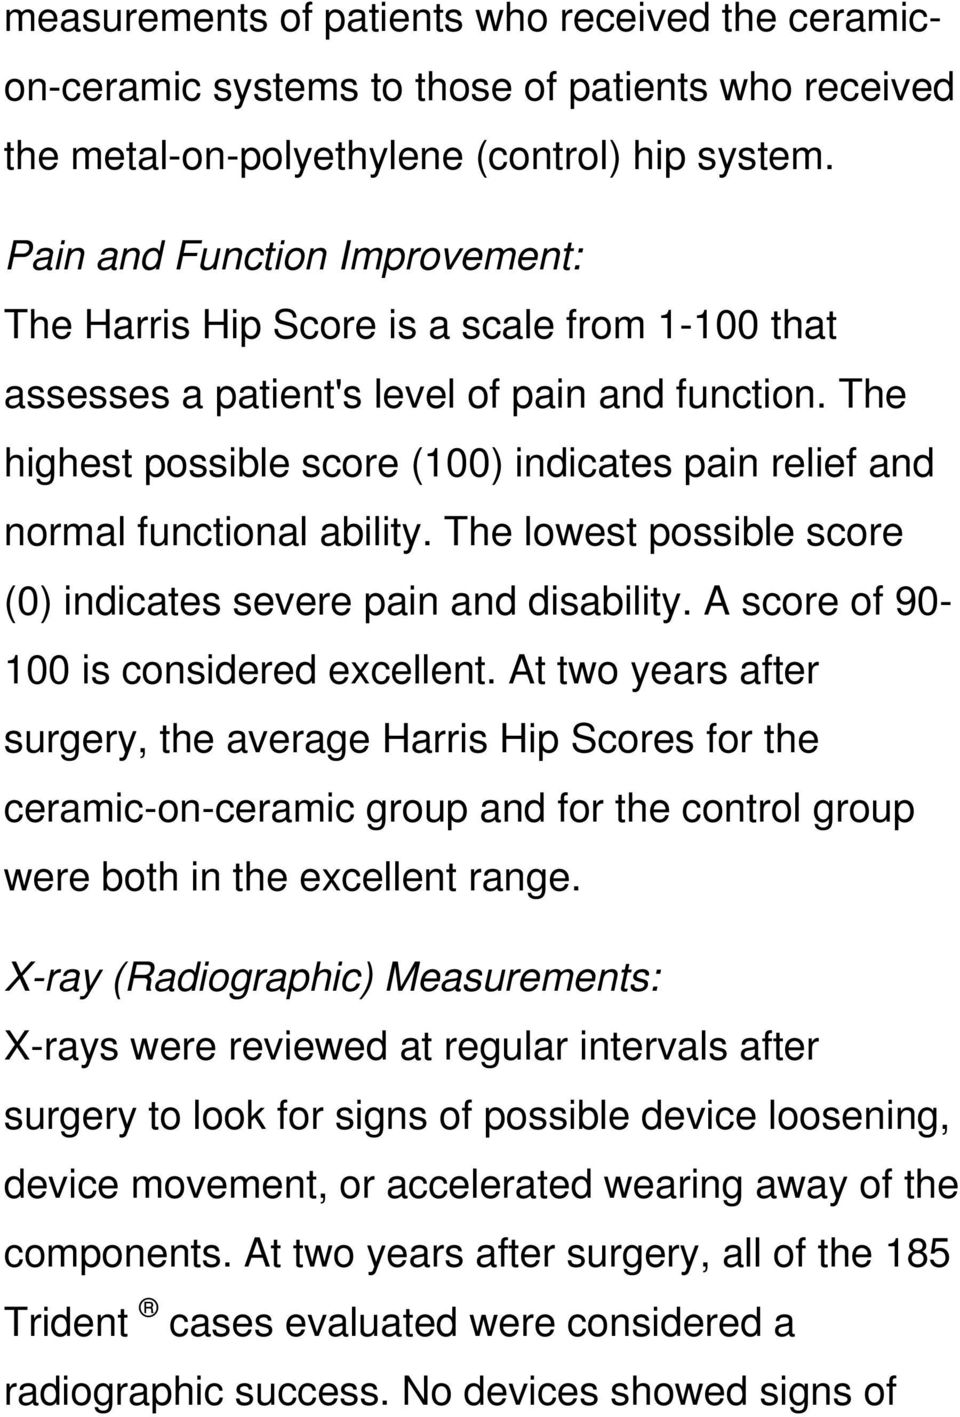 The highest possible score (100) indicates pain relief and normal functional ability. The lowest possible score (0) indicates severe pain and disability. A score of 90-100 is considered excellent.